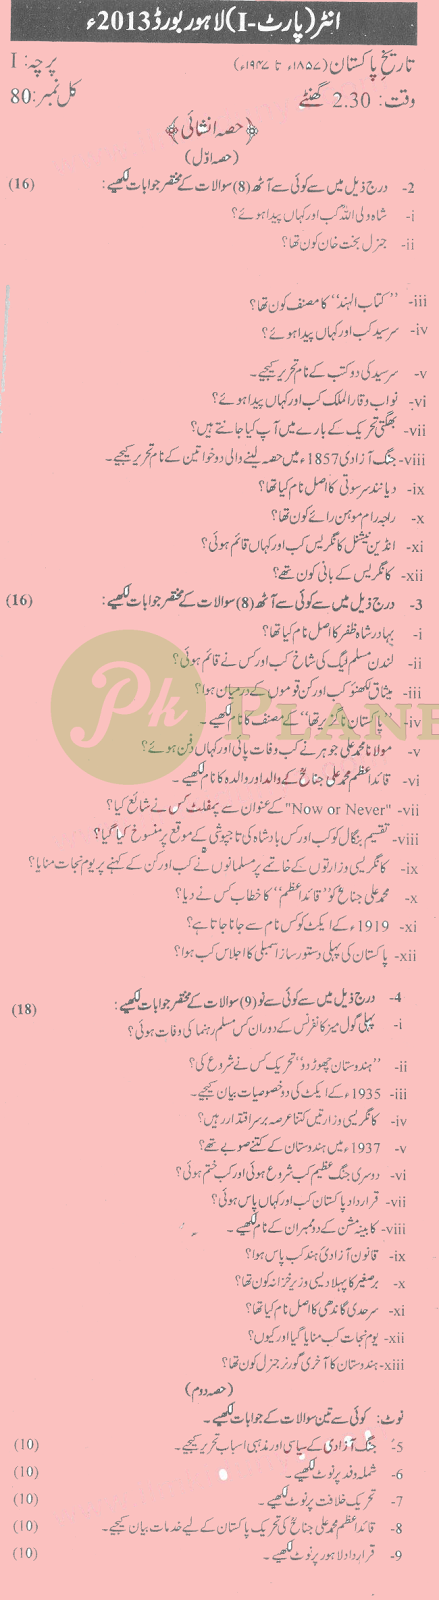 Intermediate Part 1 Past Papers Lahore Board History of Islam 2013